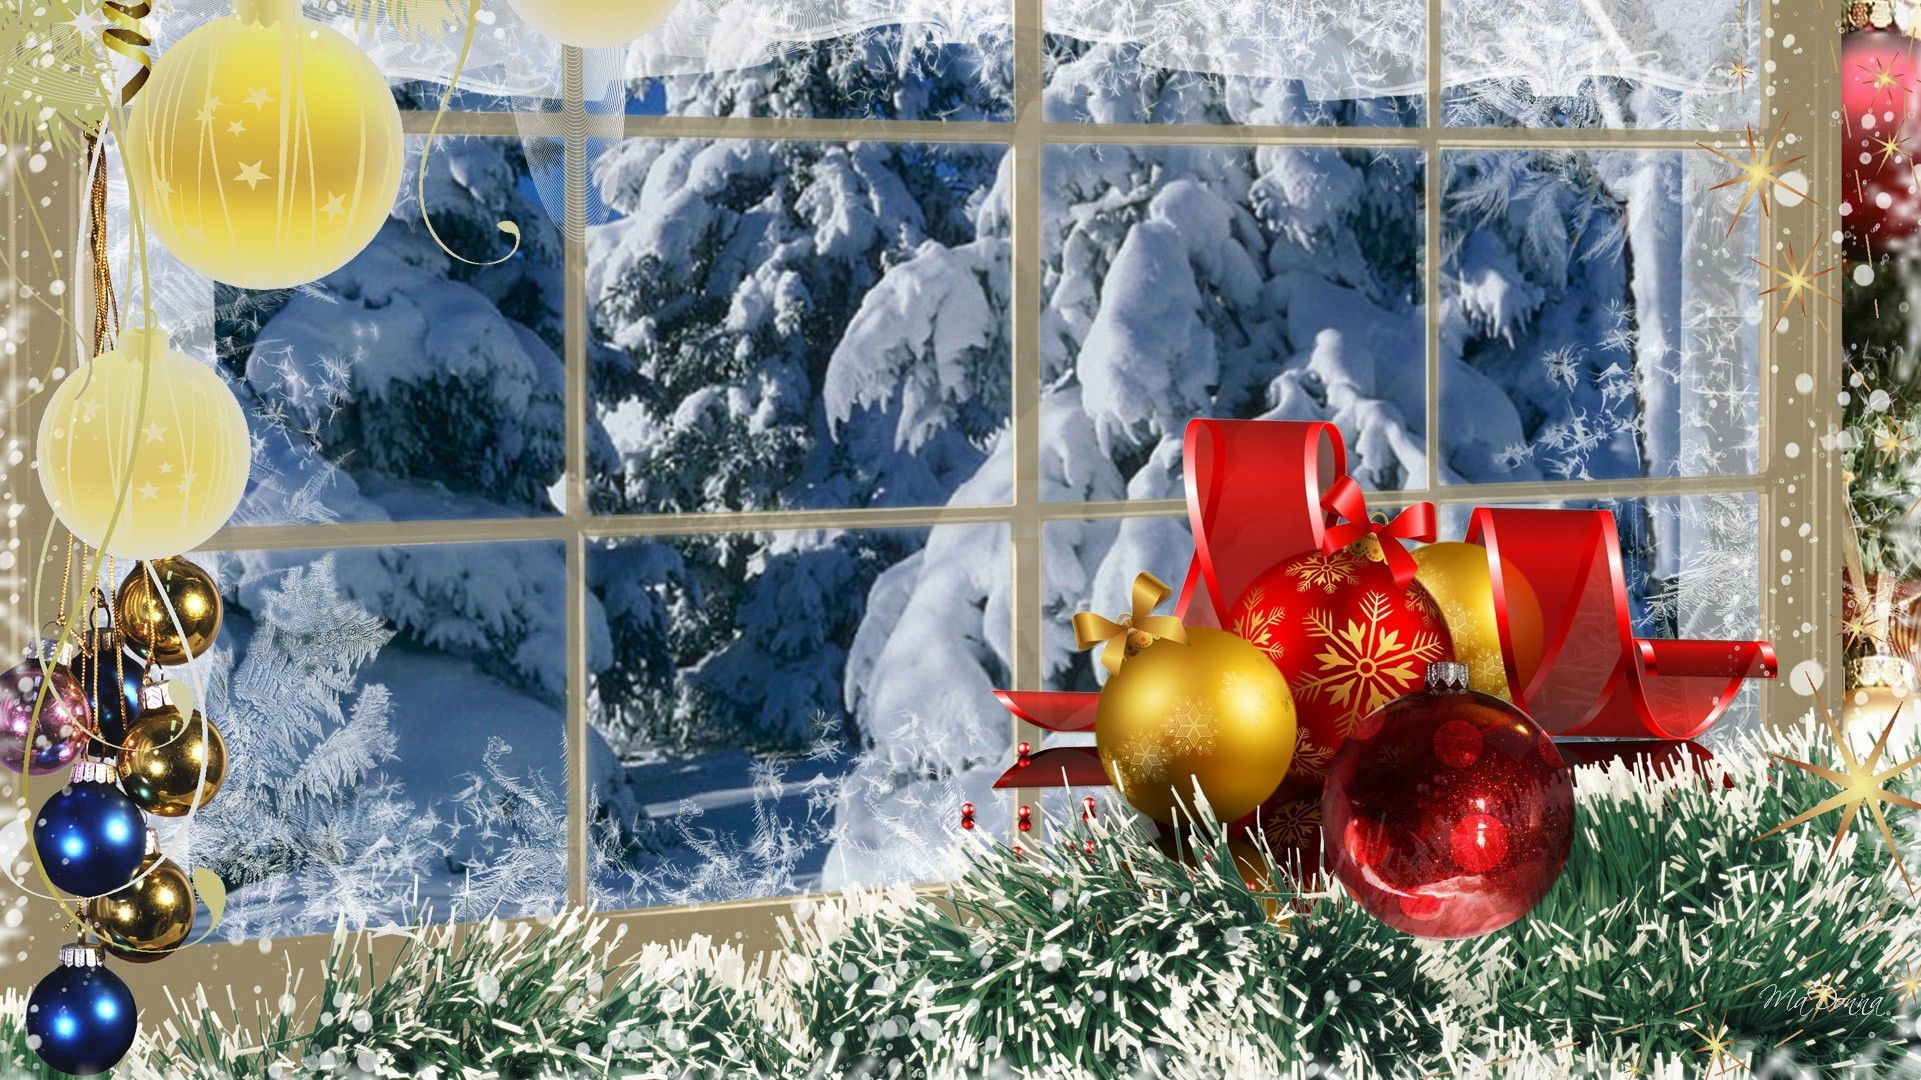 Christmas Winter Scenes Wallpapers - Wallpaper Cave